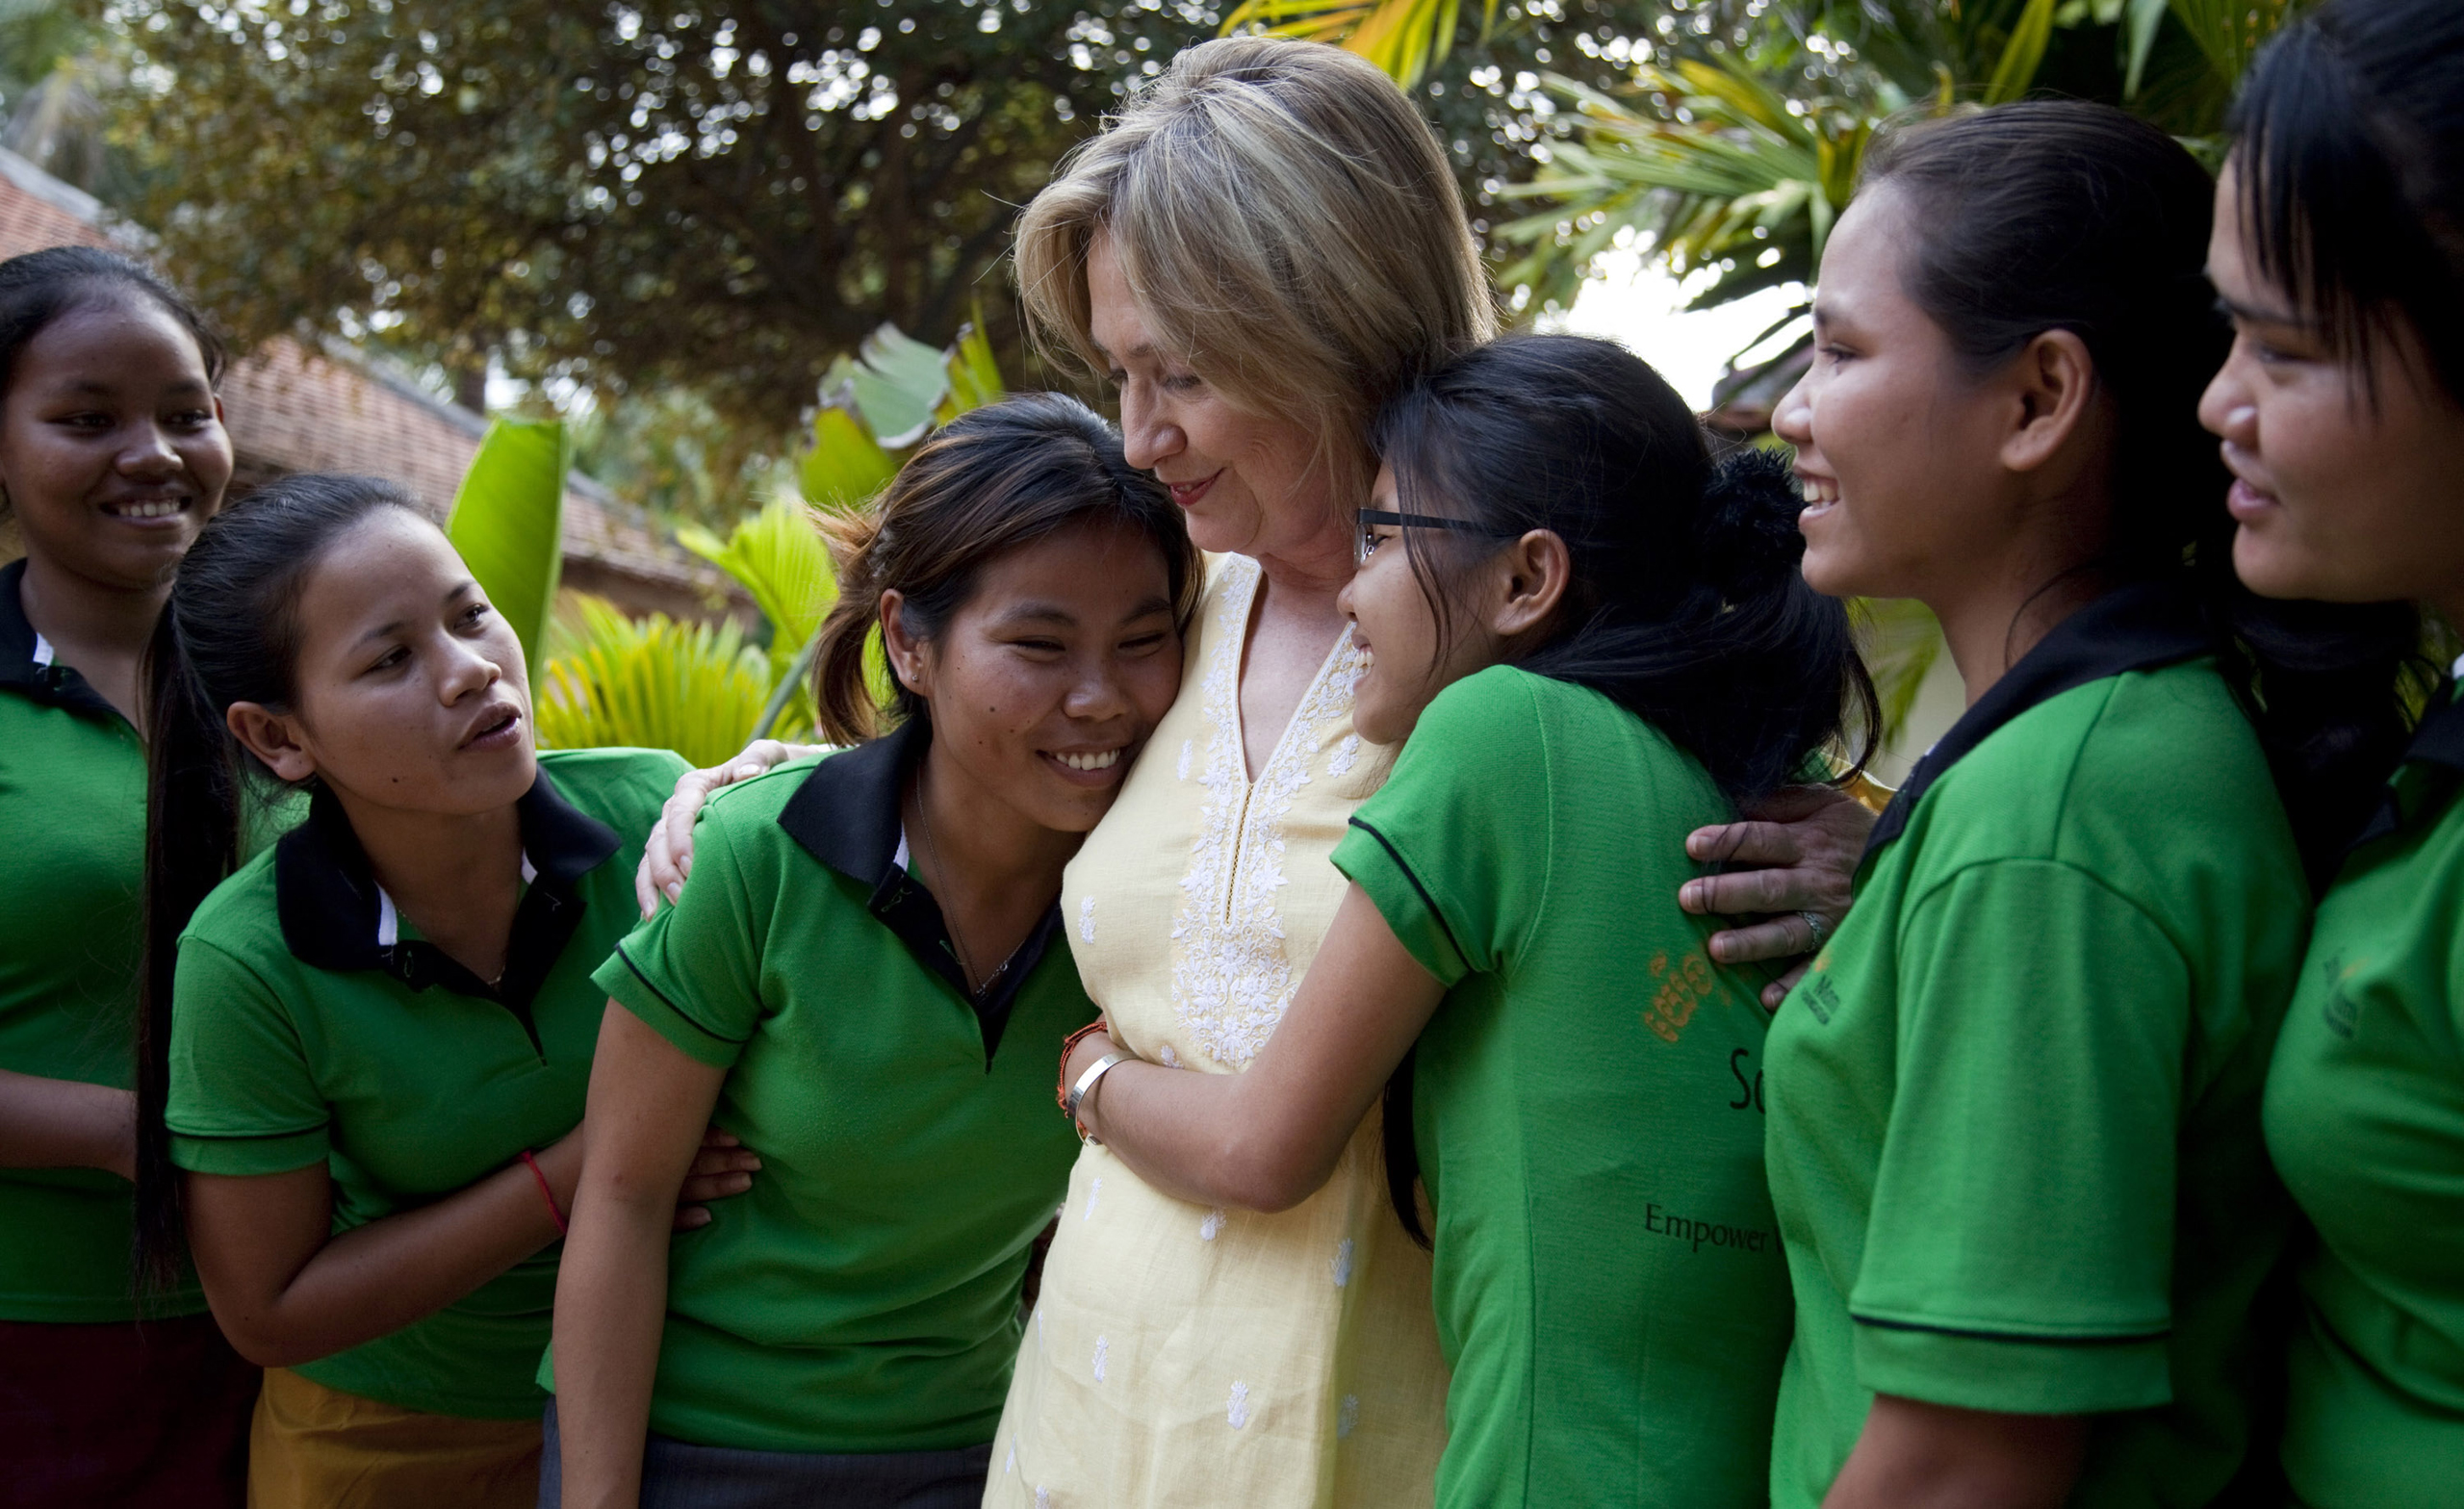 Girls hug Hillary Clinton during a tour of the Siem Reap Center, a shelter run by AFSEIP that provides rehabilitation, vocational training, and social reintegration for sex trafficking victims in Cambodia, on Oct. 31, 2010.